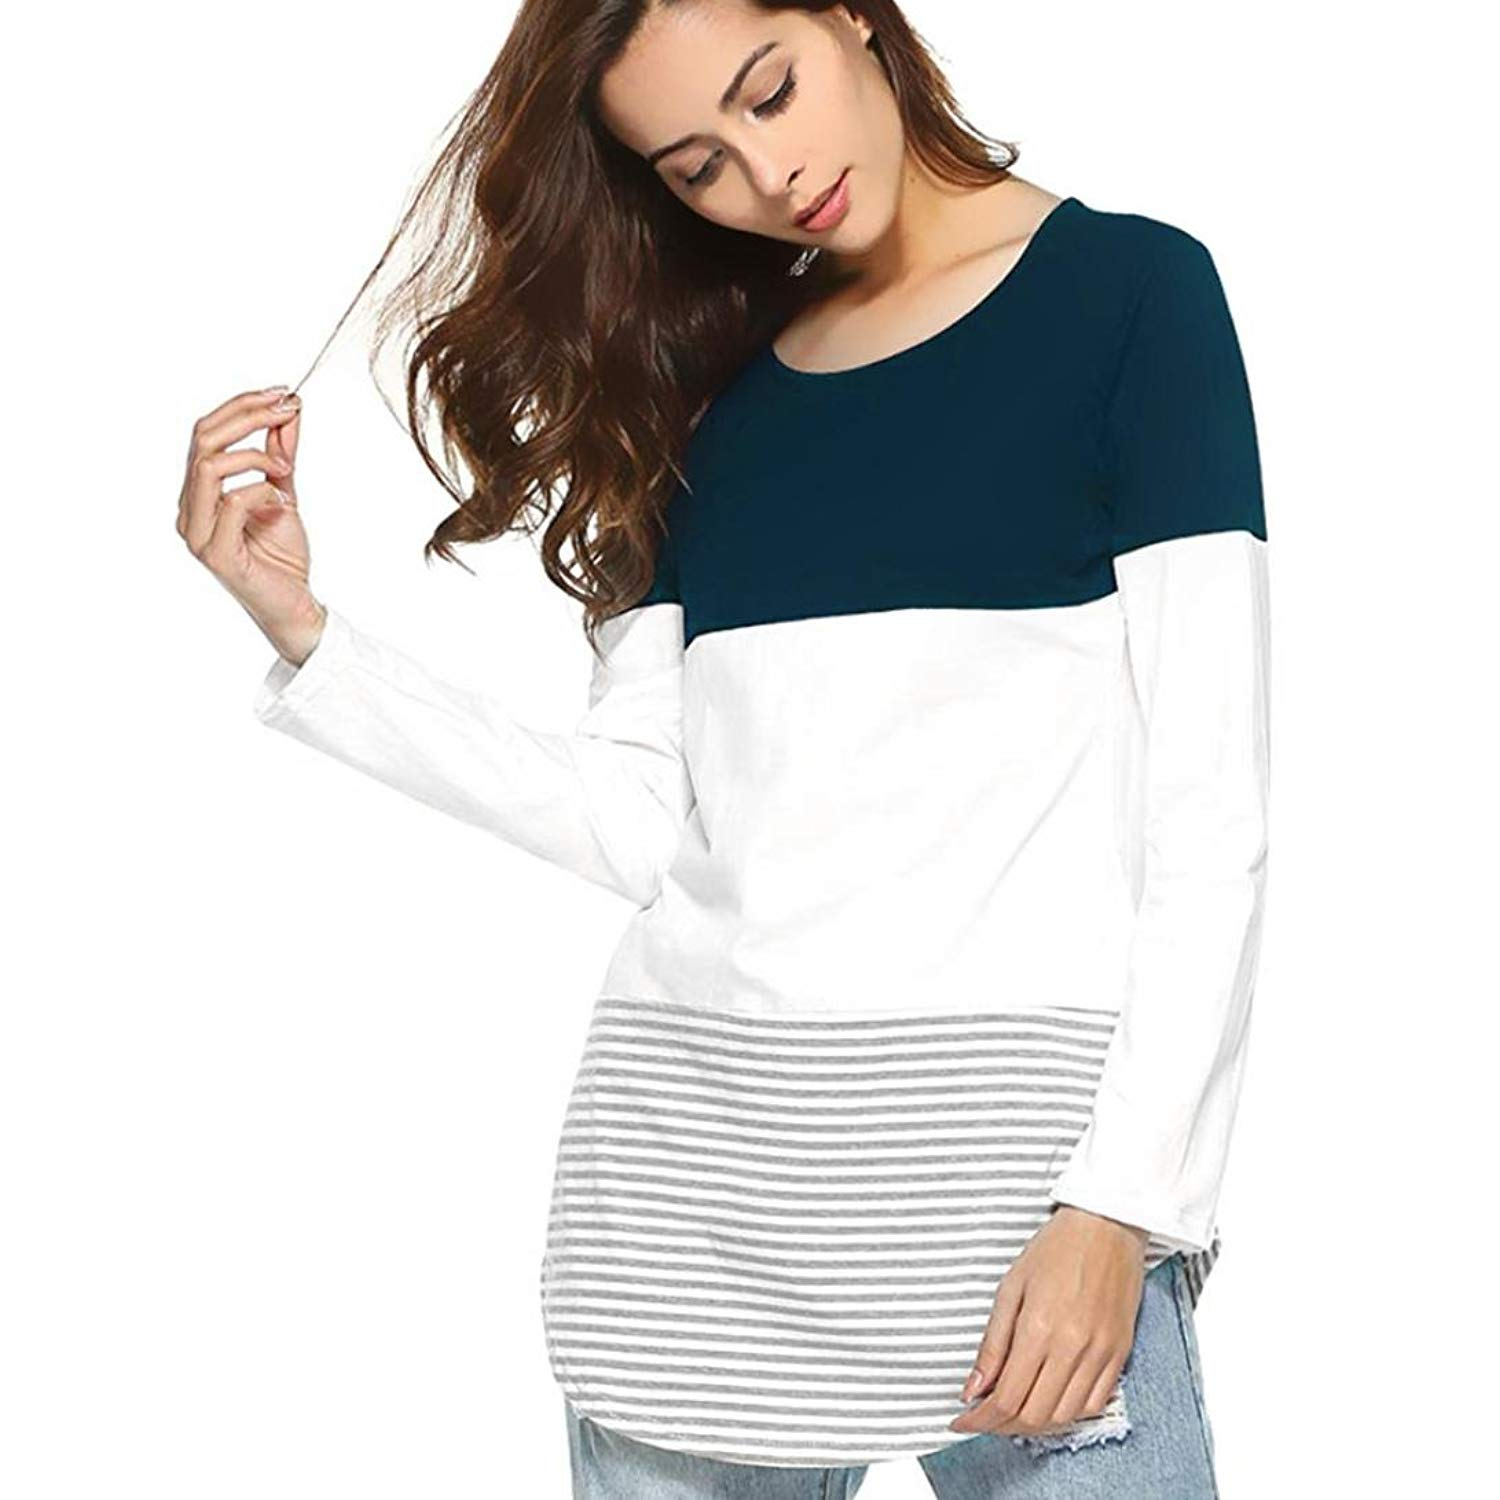 Mnyycxen Women's Casual Long Sleeve Striped Patchwork Tunic T Shirt Blouse Tops